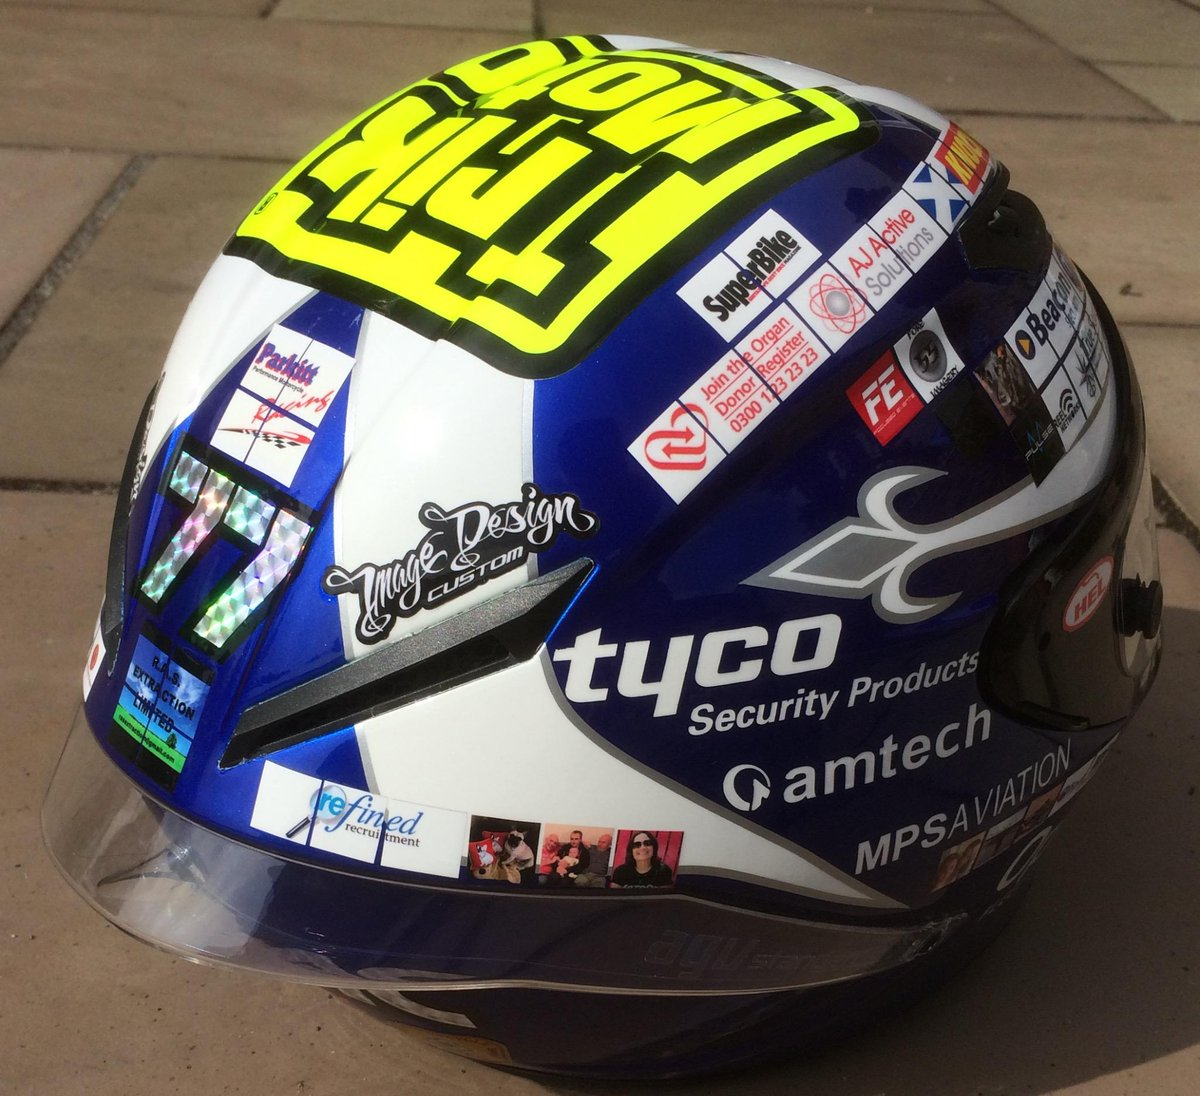 Squares on my helmet are available to purchase again for 2015! Retweet to win a freebie #FREE http://t.co/gcbcw5xvbY. http://t.co/Kr4THCYliX